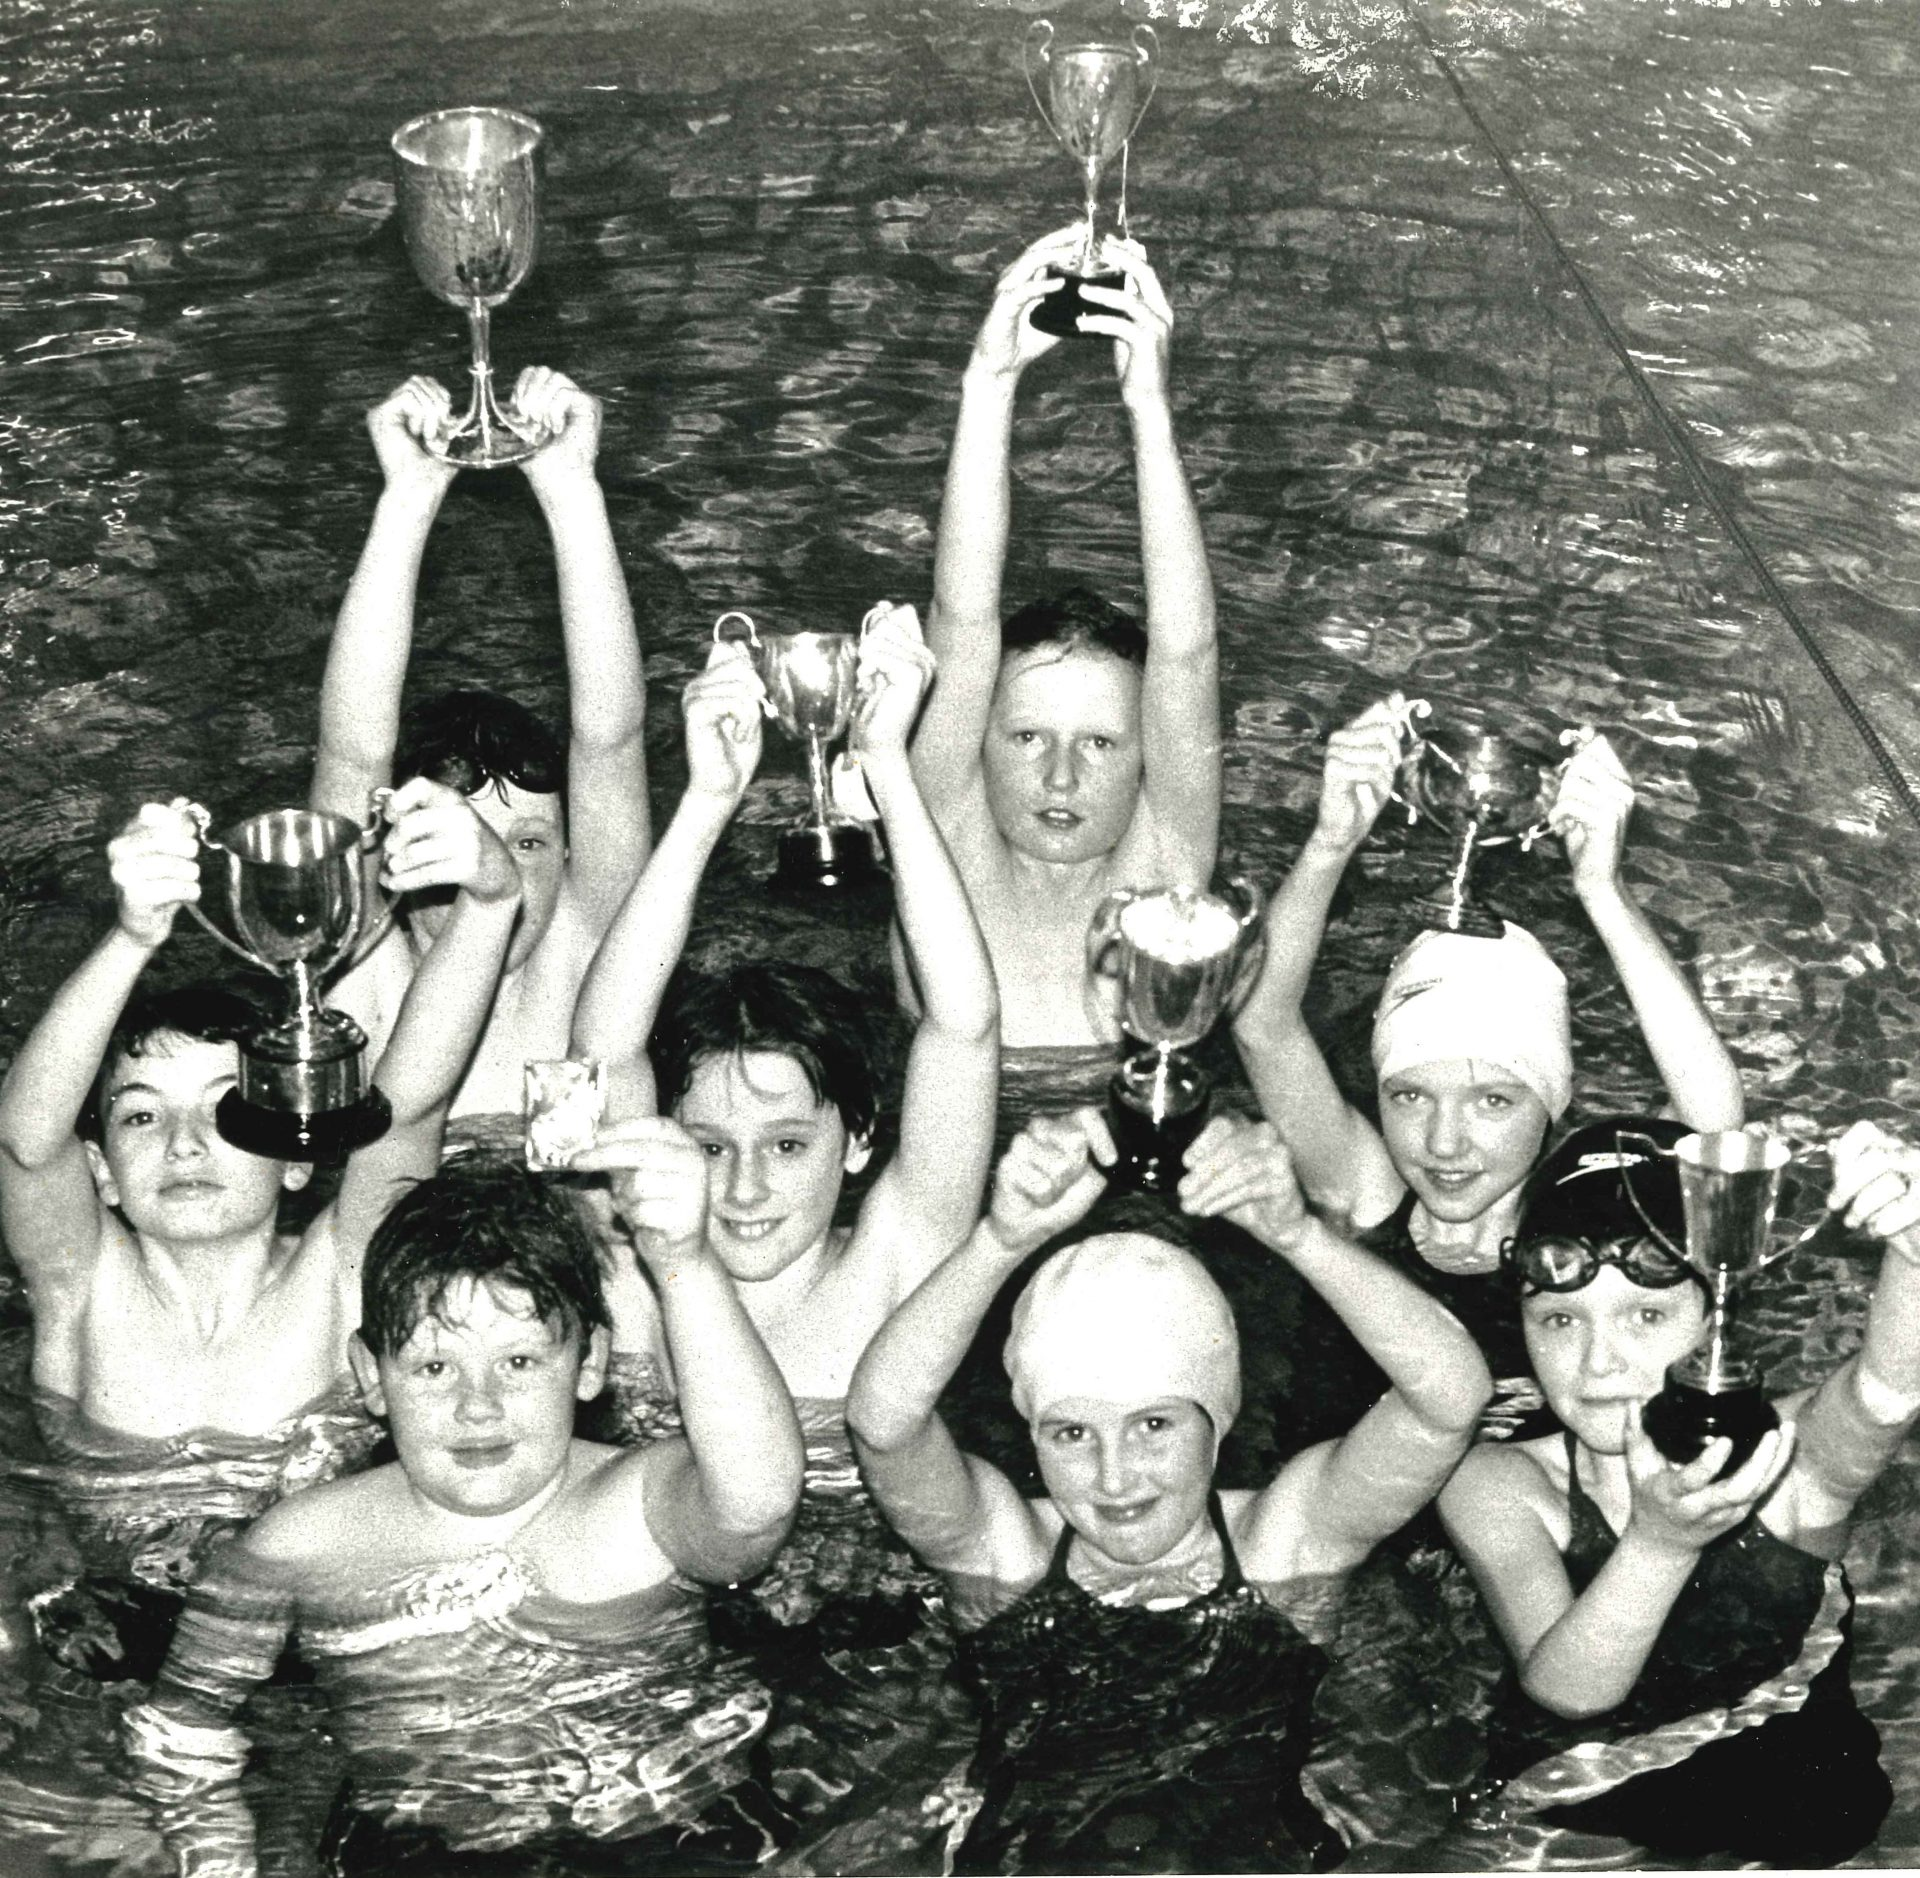 Swimmers holding trophies aloft